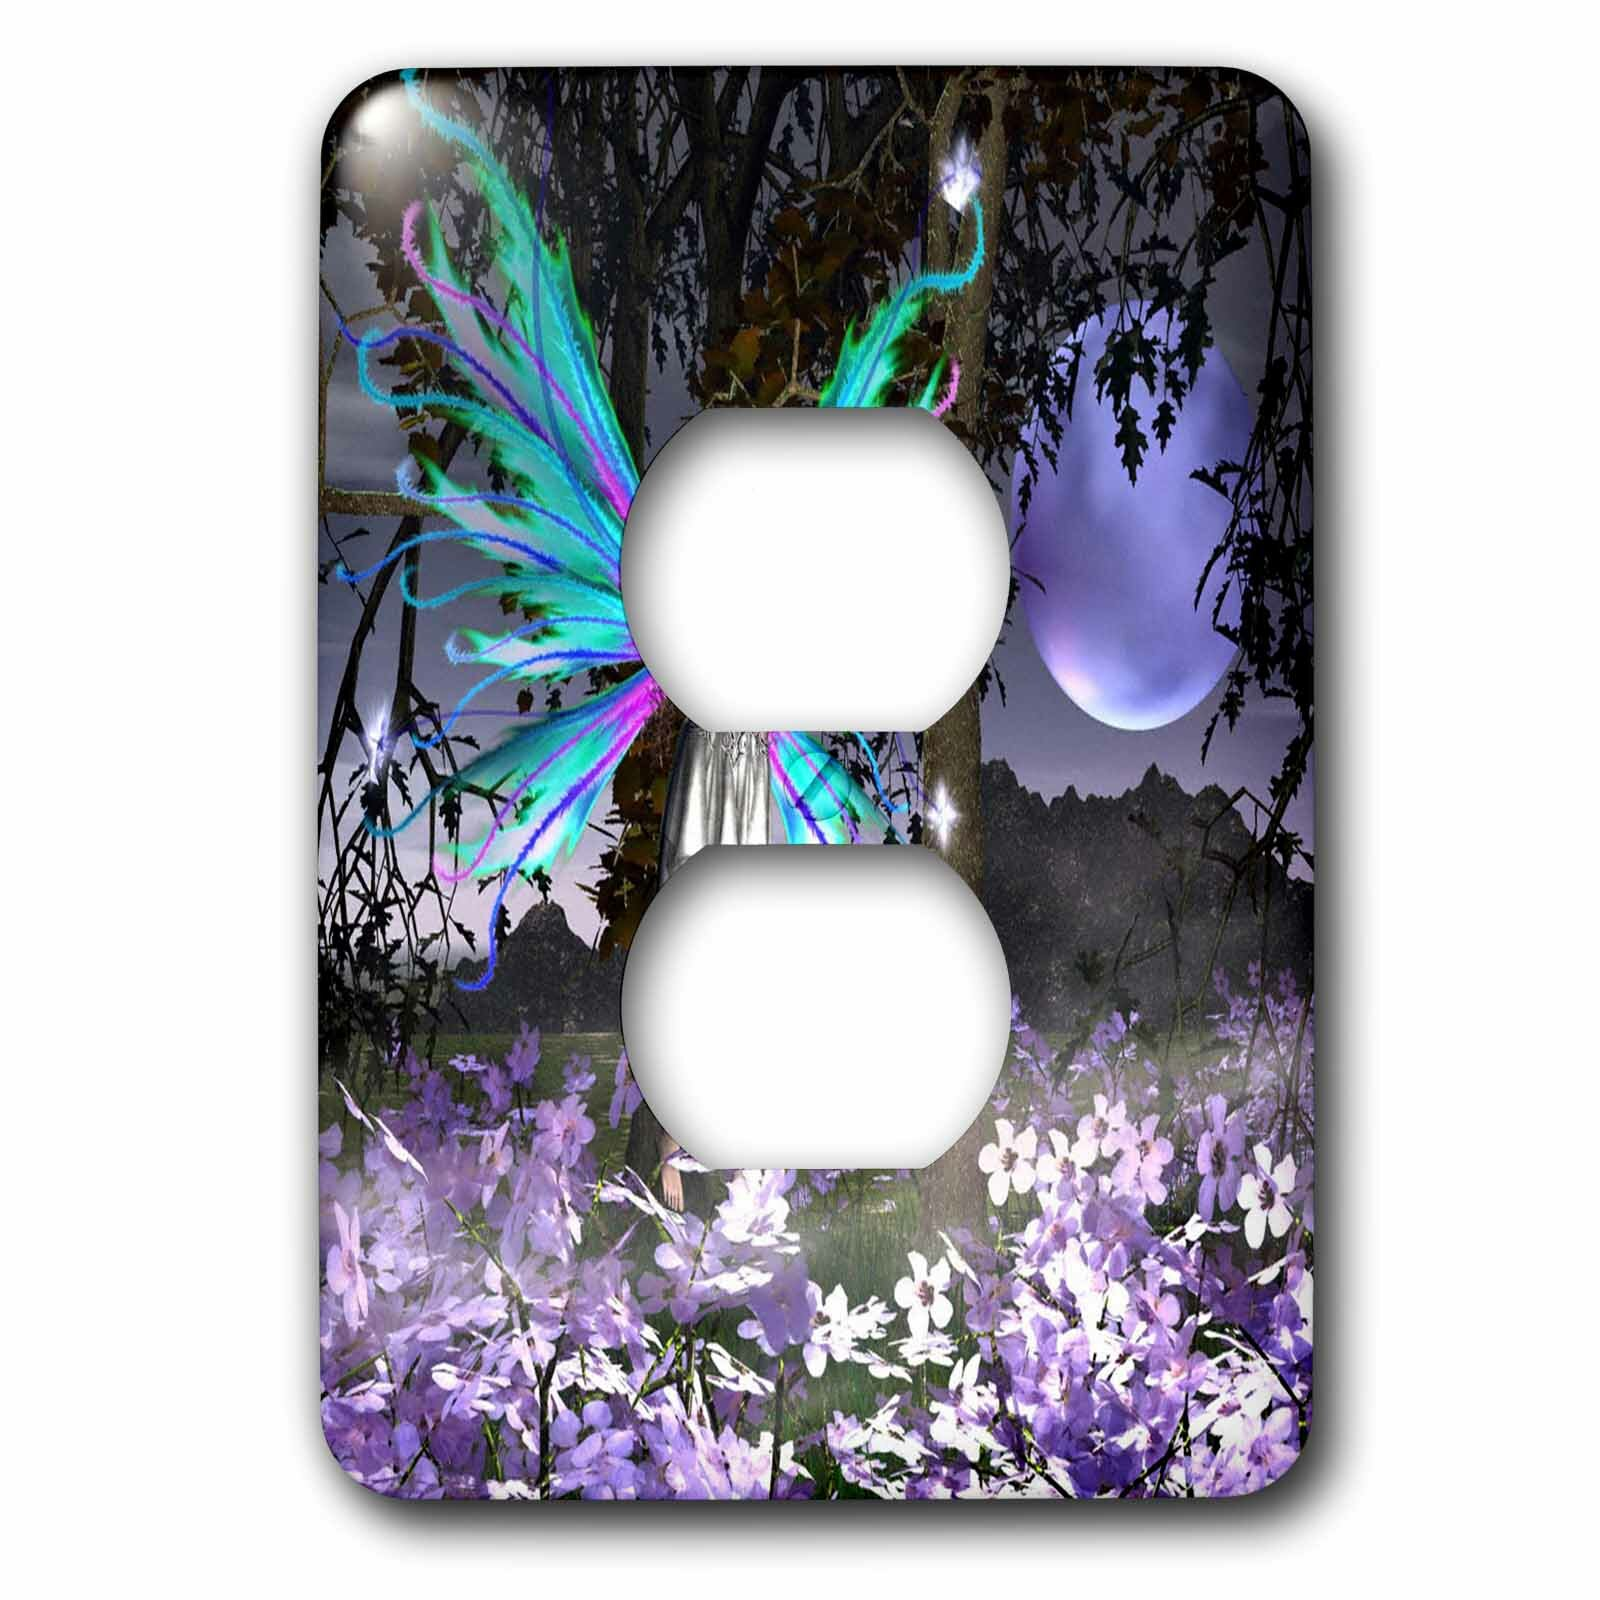 3drose Delighted A Fairy With Flowers 1 Gang Duplex Outlet Wall Plate Wayfair